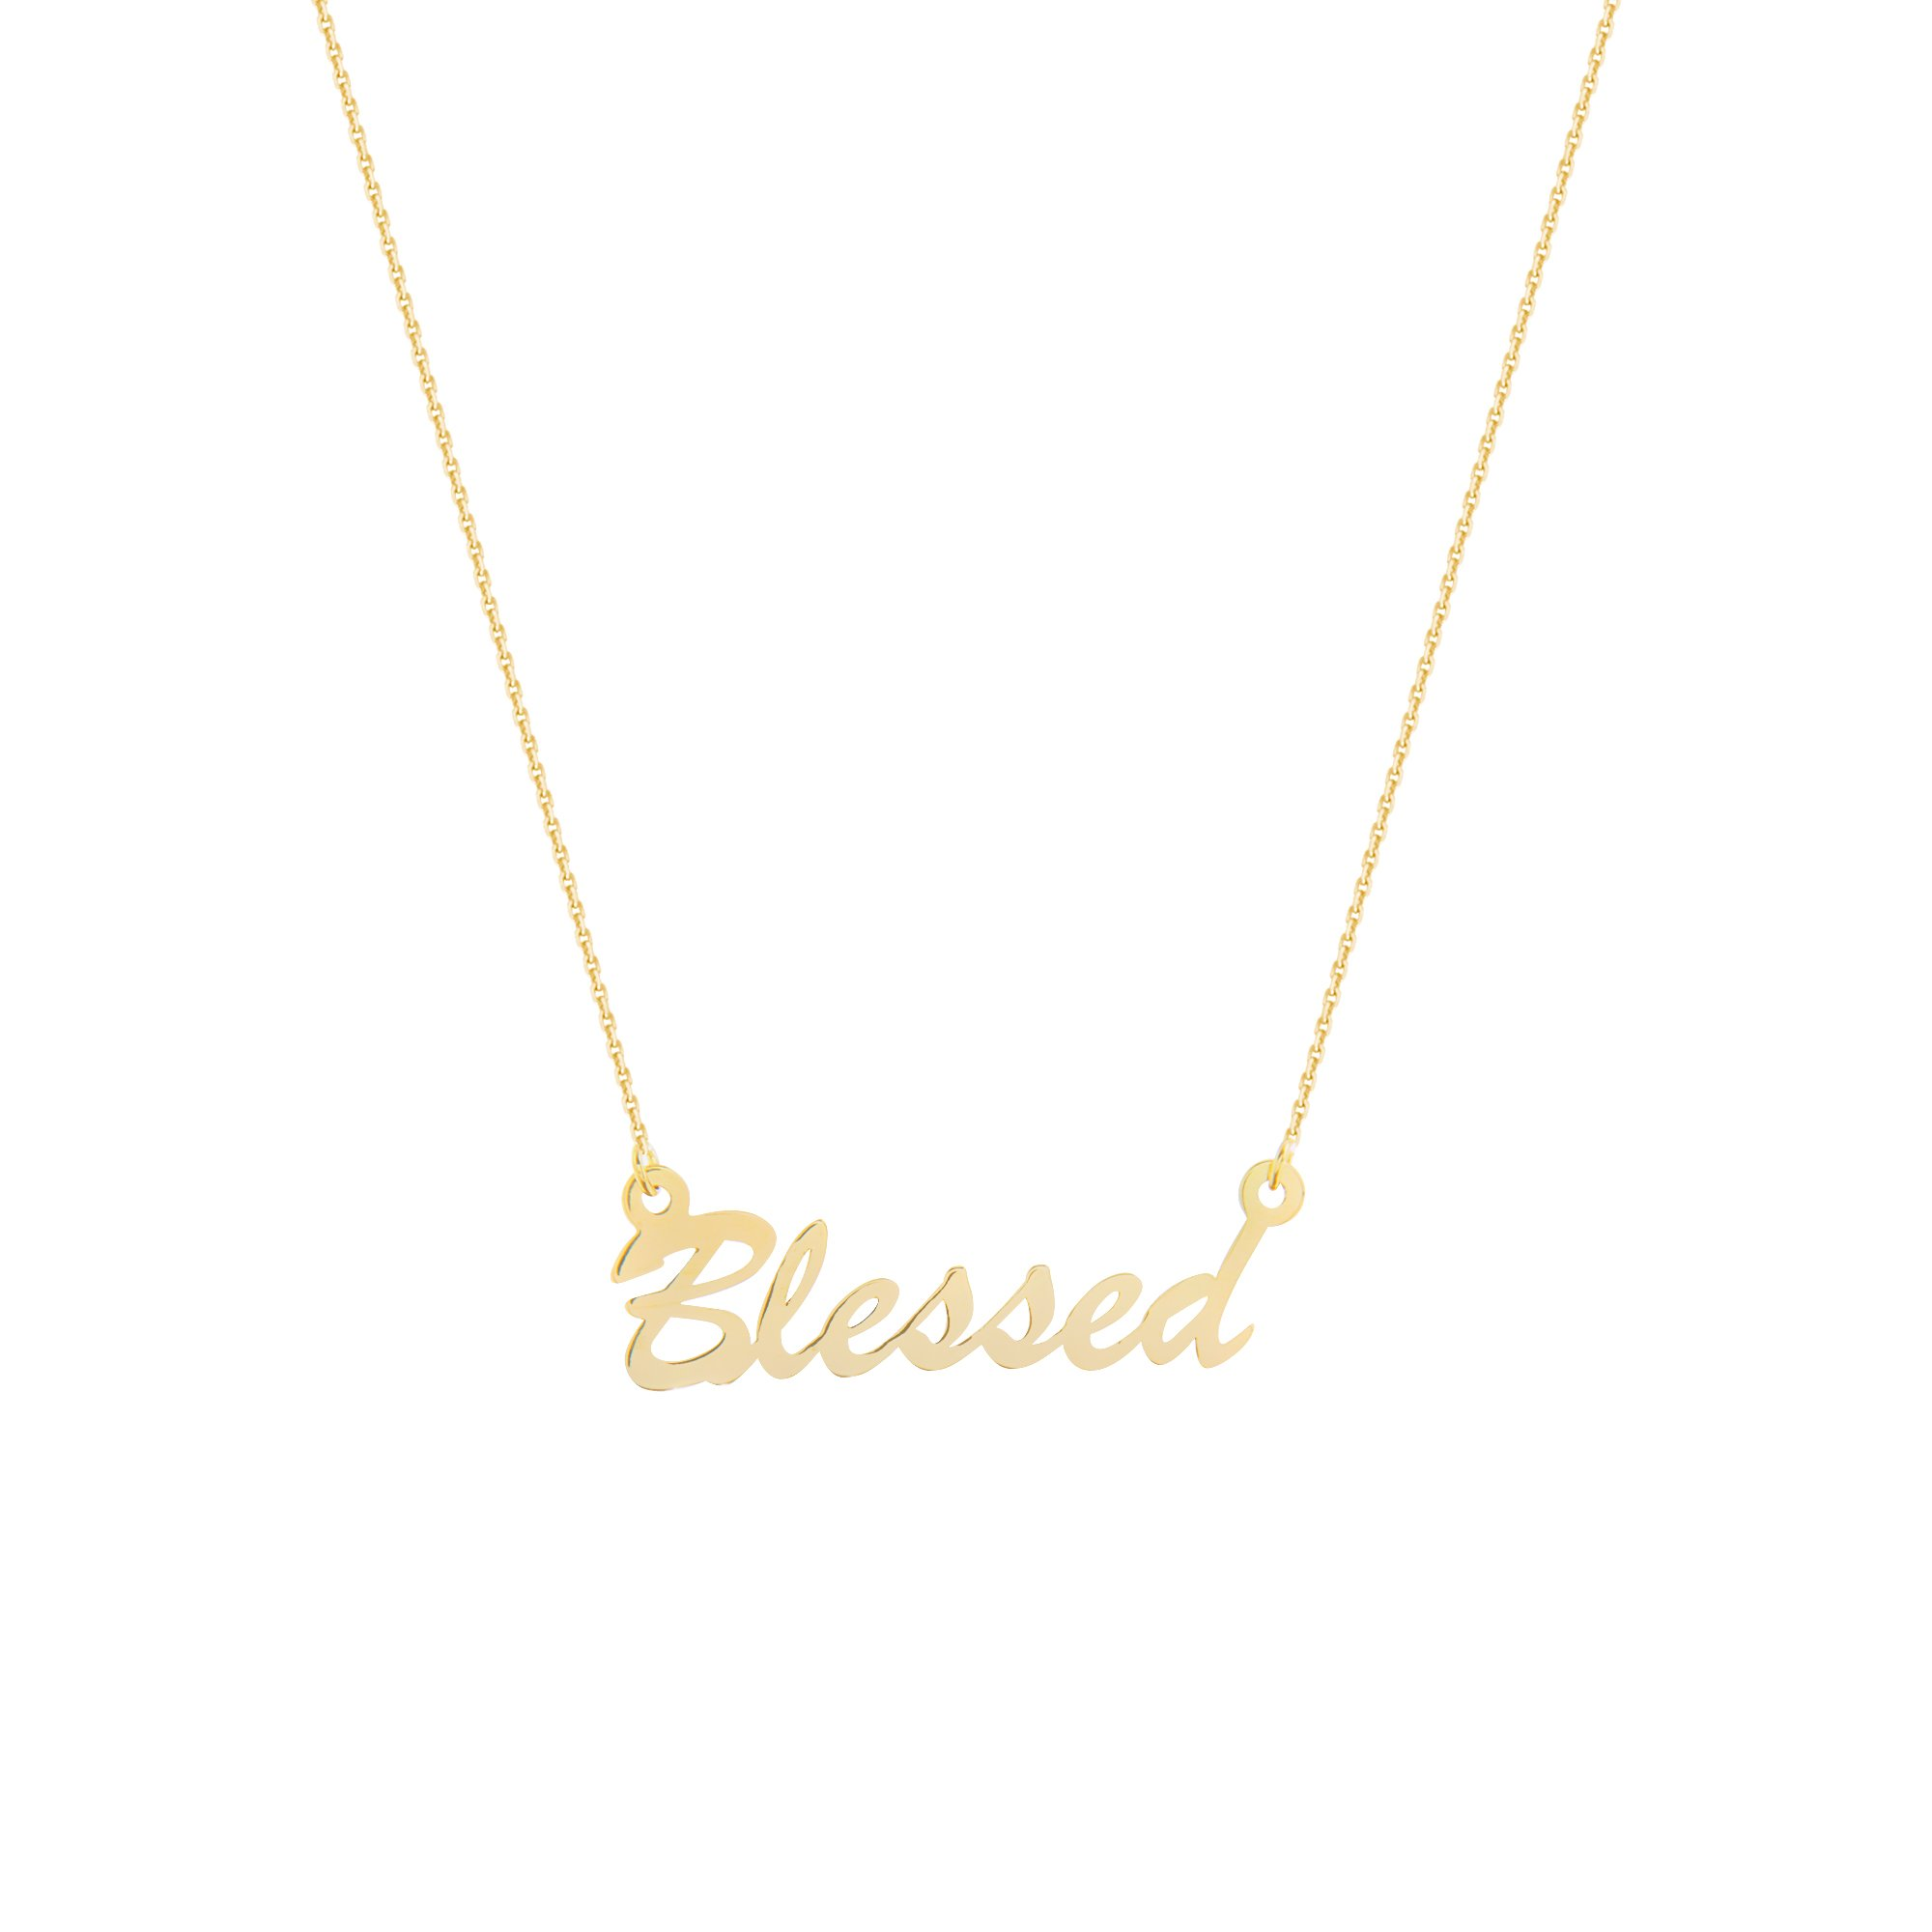 BLESSED NECKLACE, 14KT GOLD BLESSED NECKLACE 18'' INCHES by DiamondJewelryNY